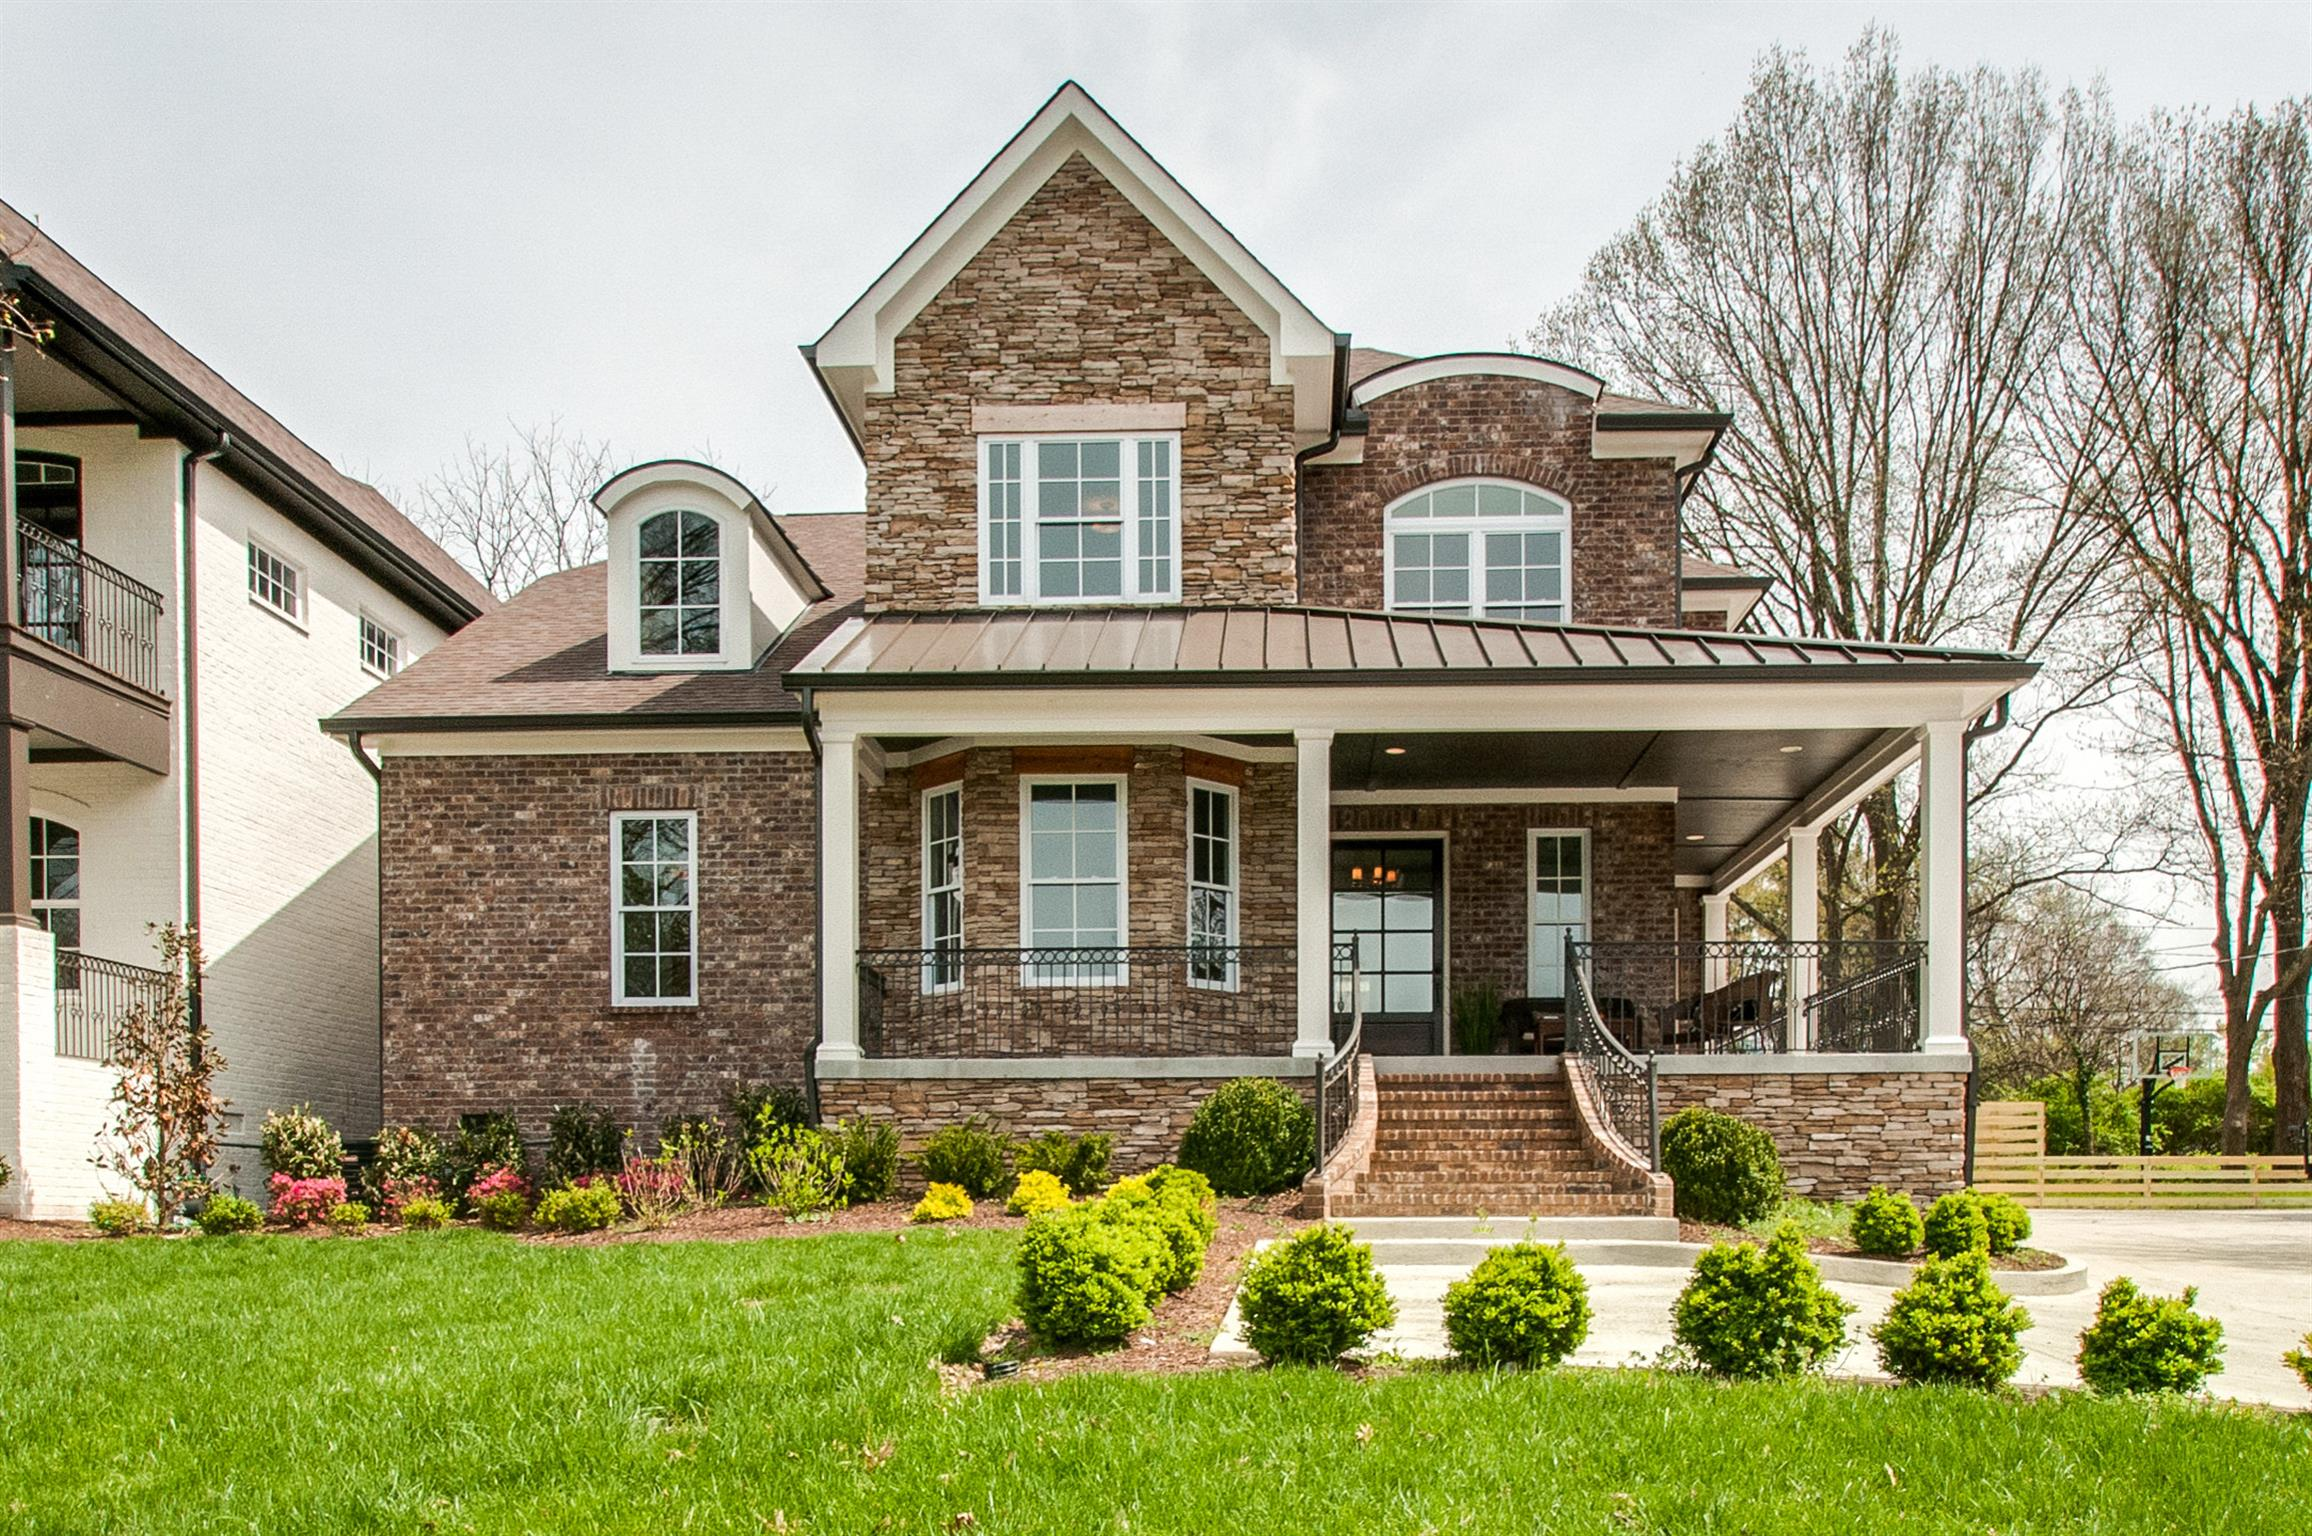 Nashville - Green Hills Homes for Sale -  Price Reduced,  4022B Lealand Ln